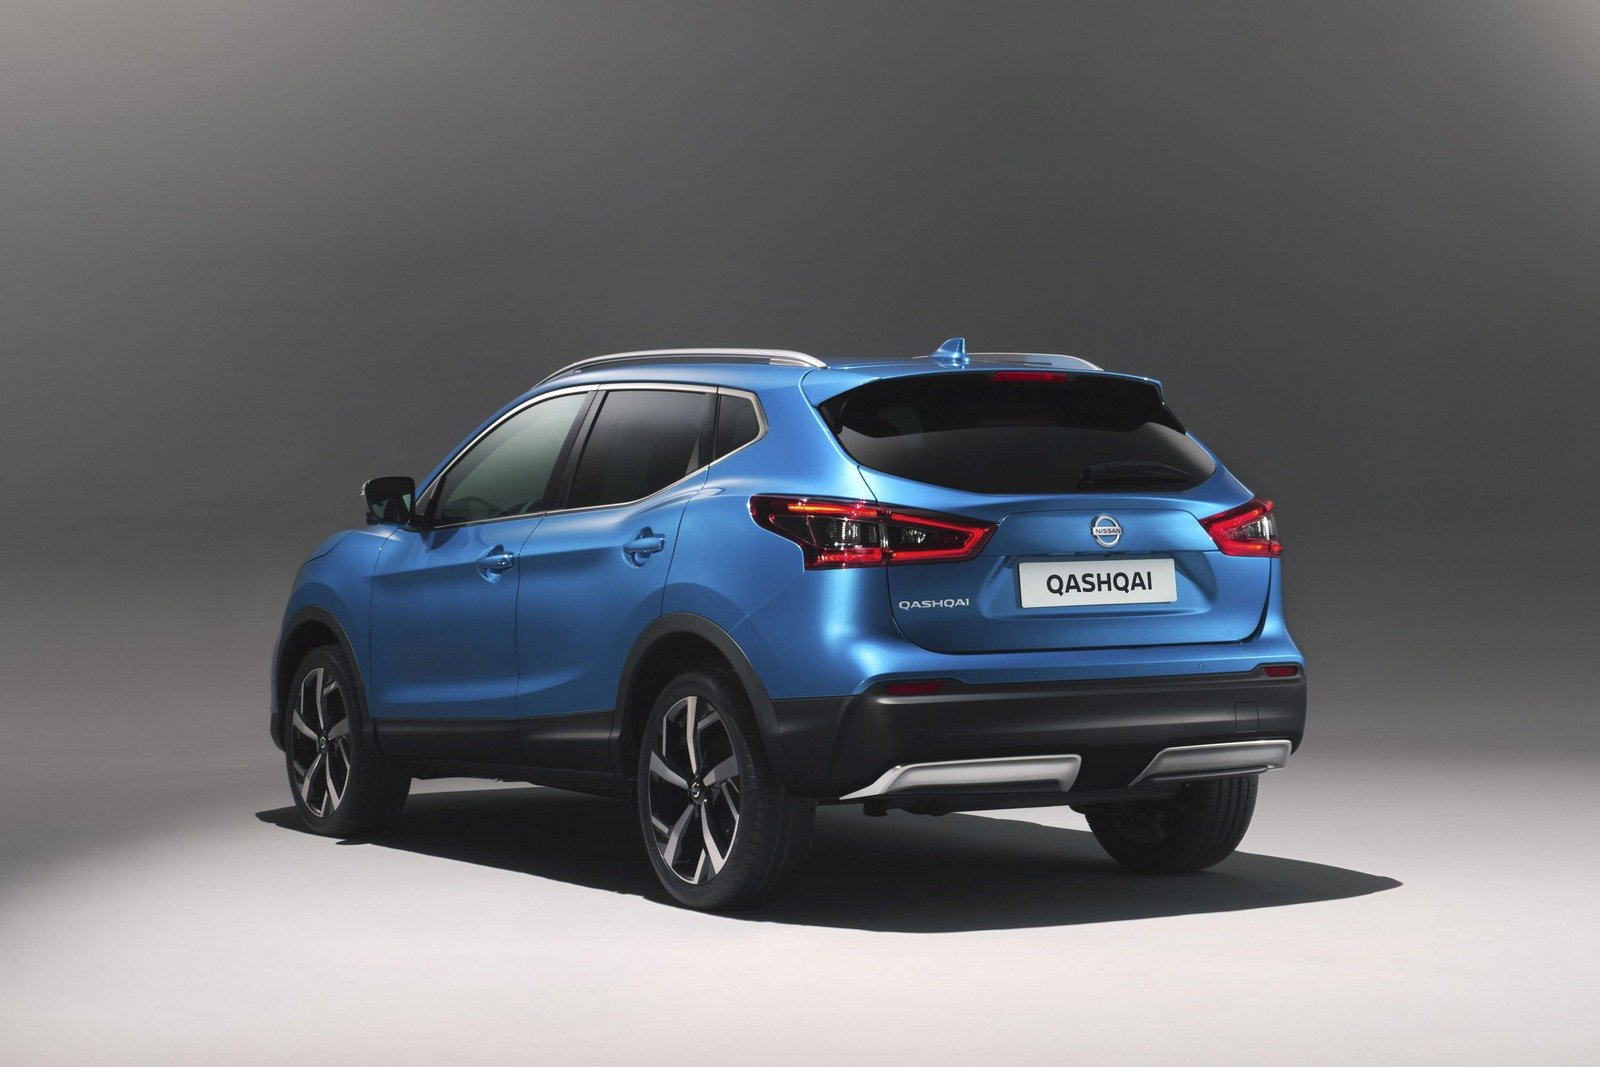 Nissan Qashqai Private Lease Deals Nissan Qashqai B W P5 Deals